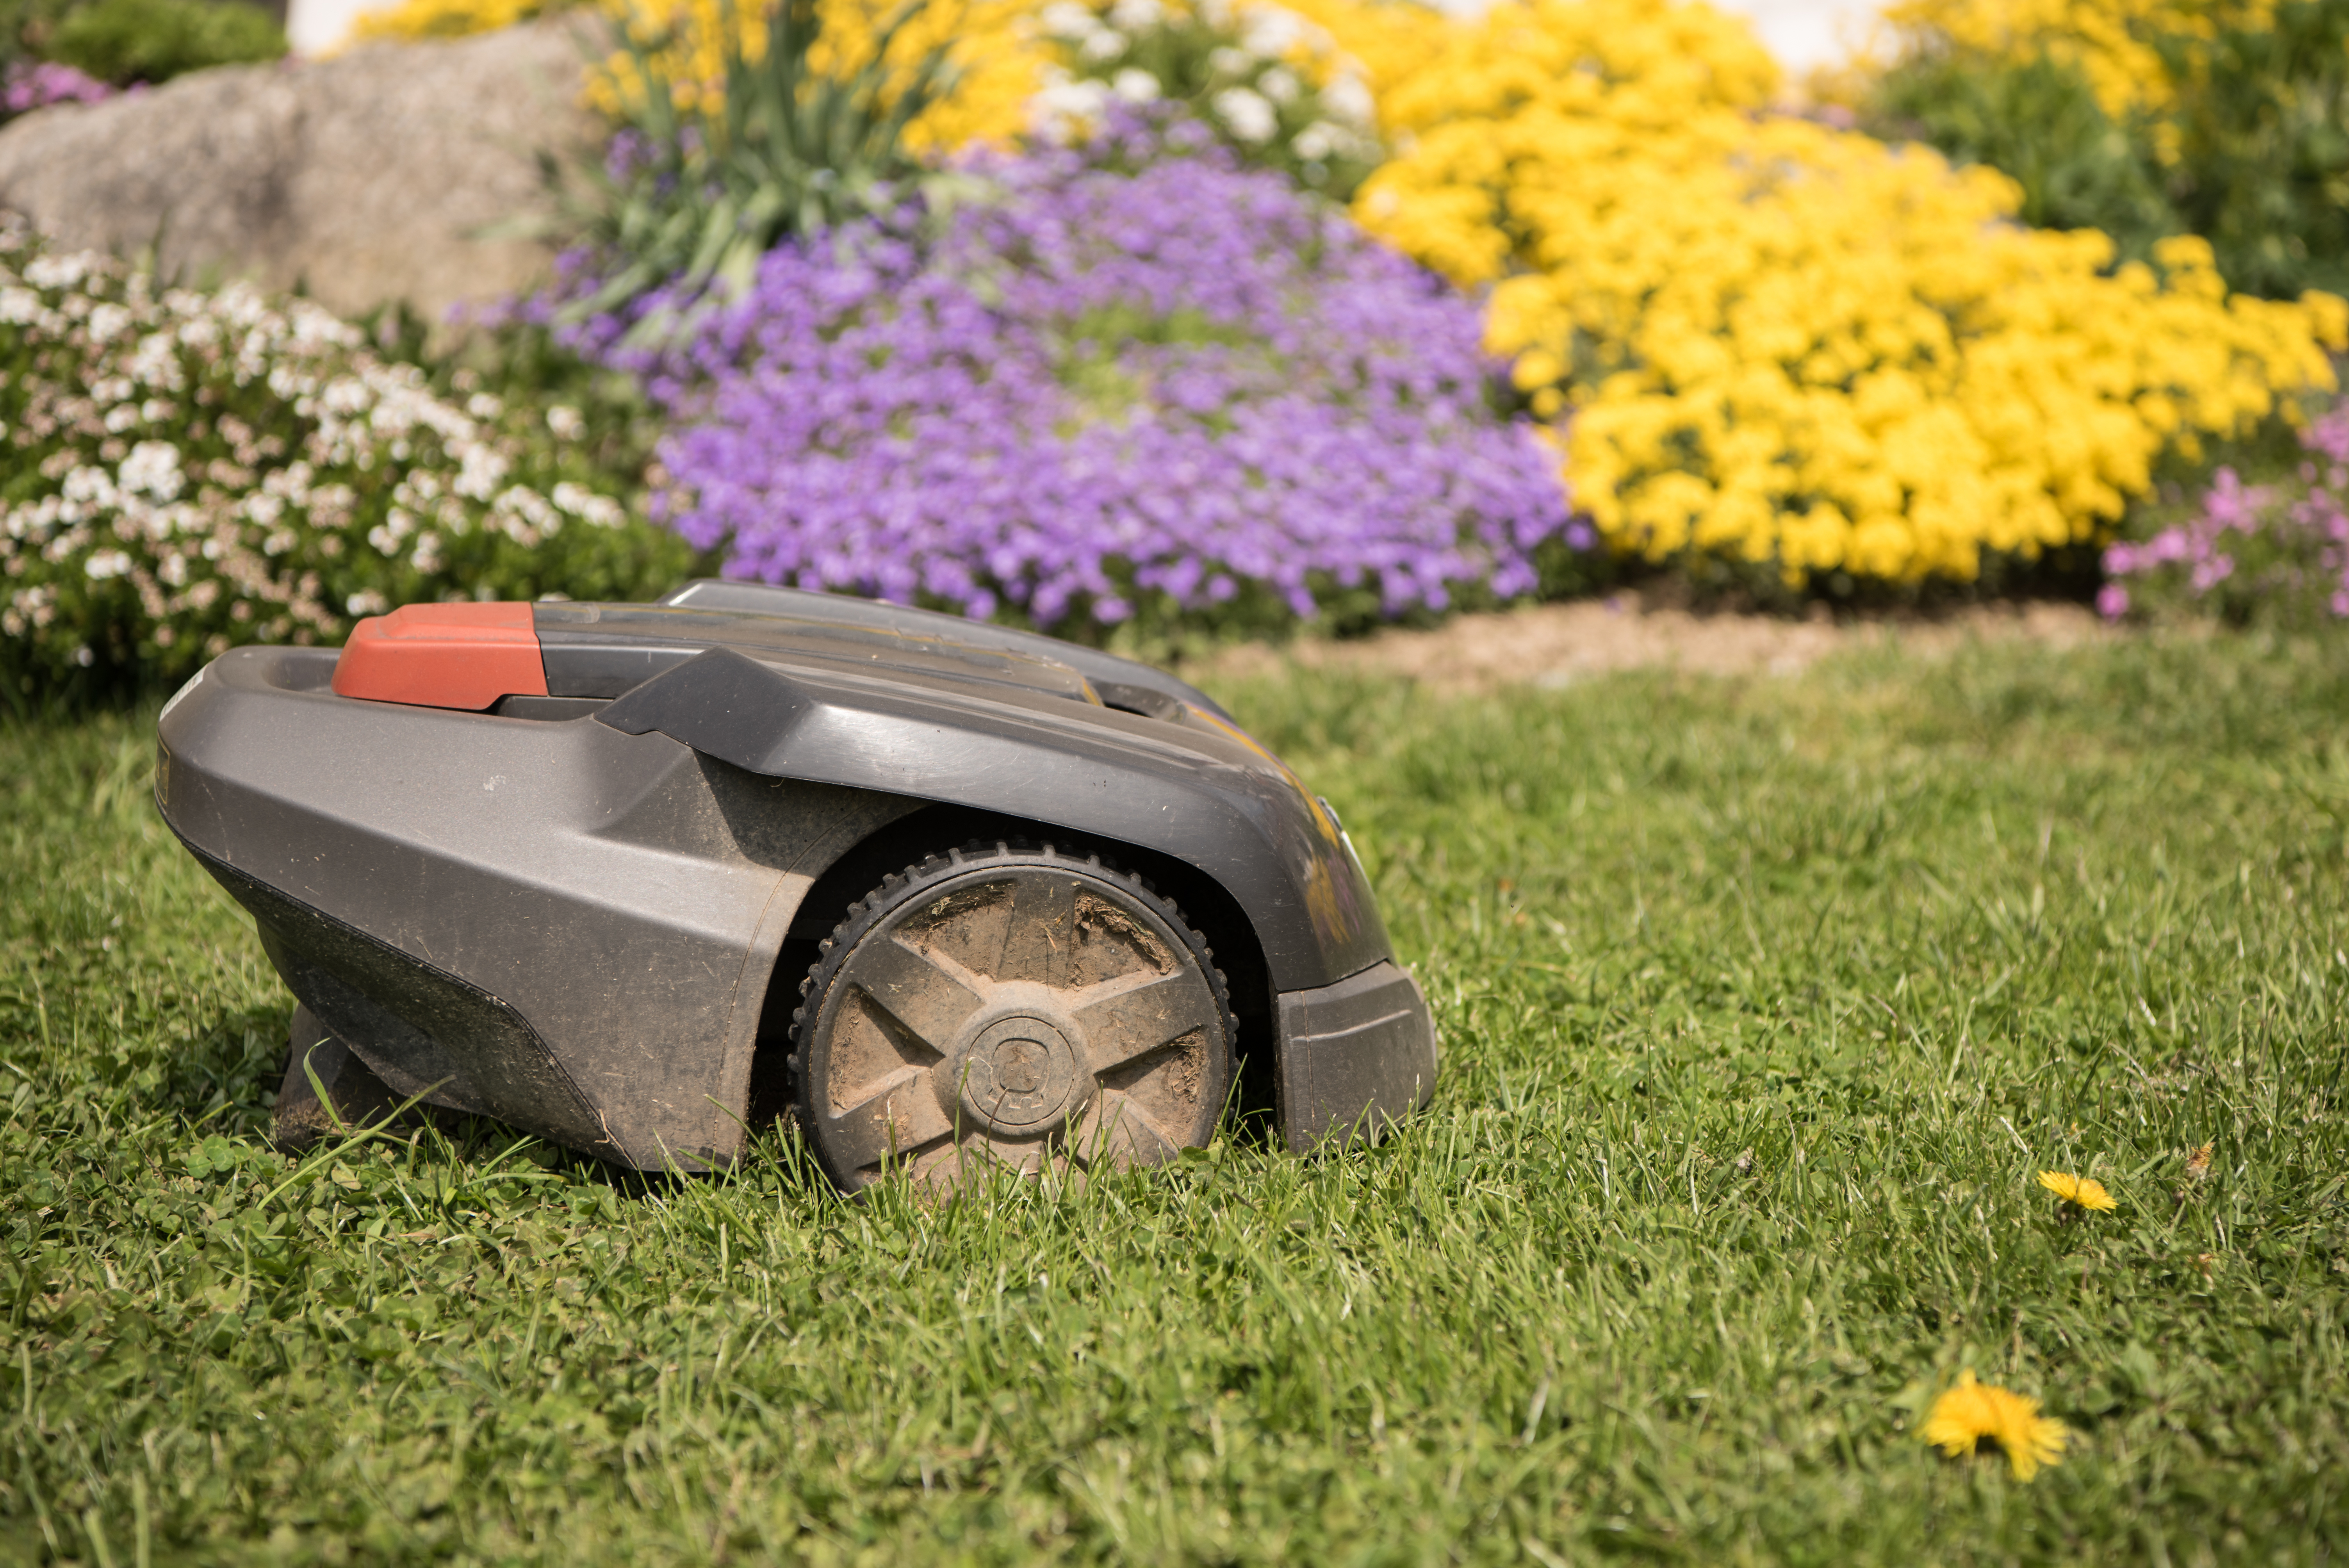 Lawnmowers next victim in age of automation